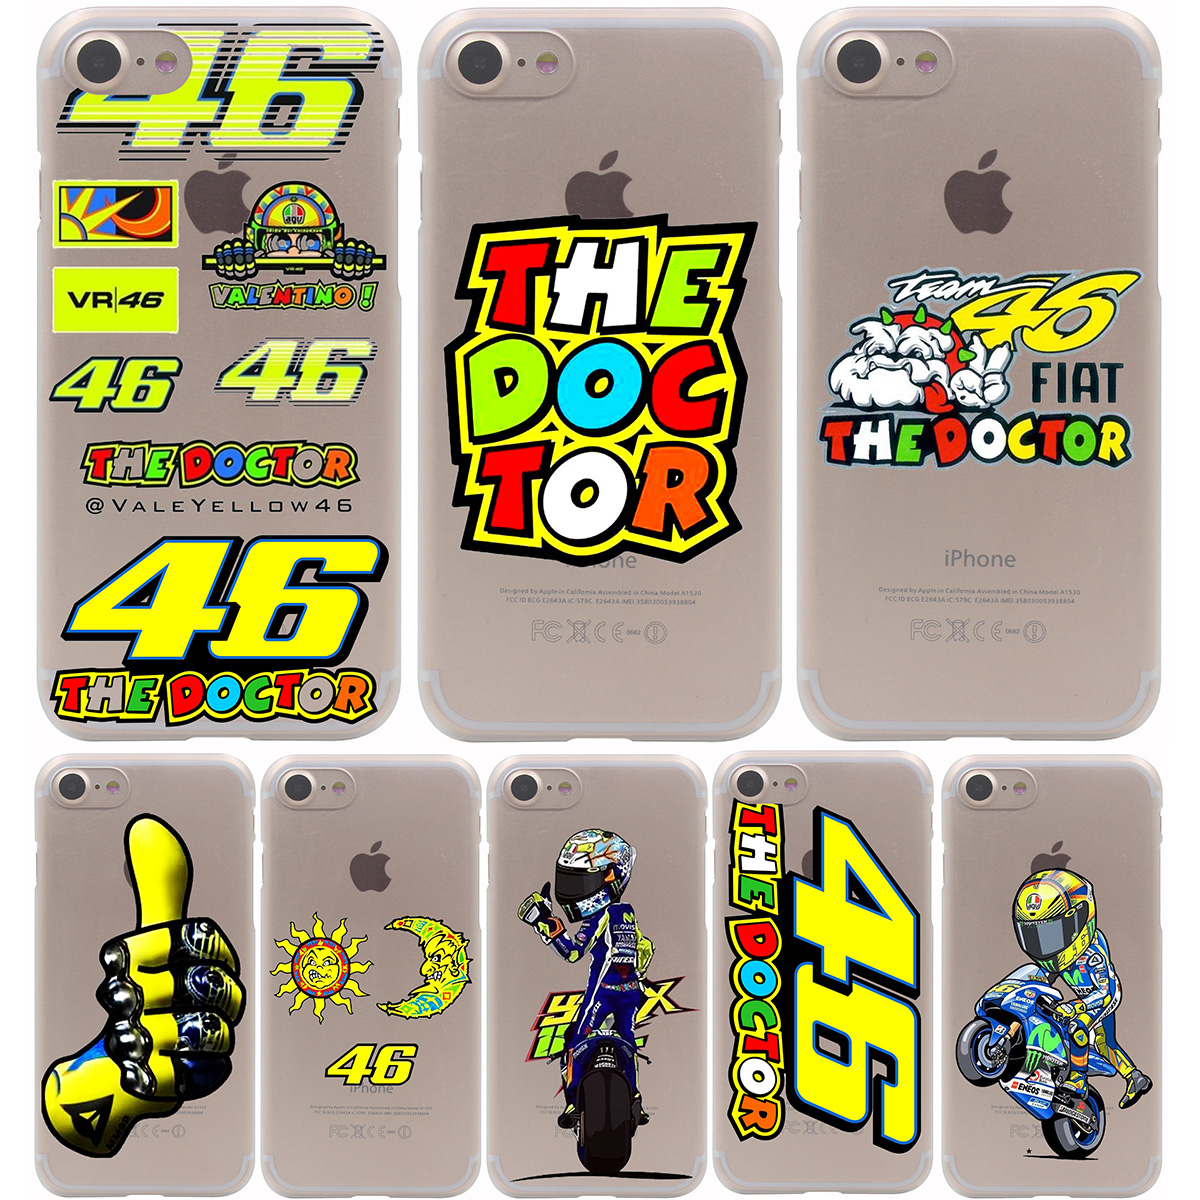 iphone 6 coque valentino rossi